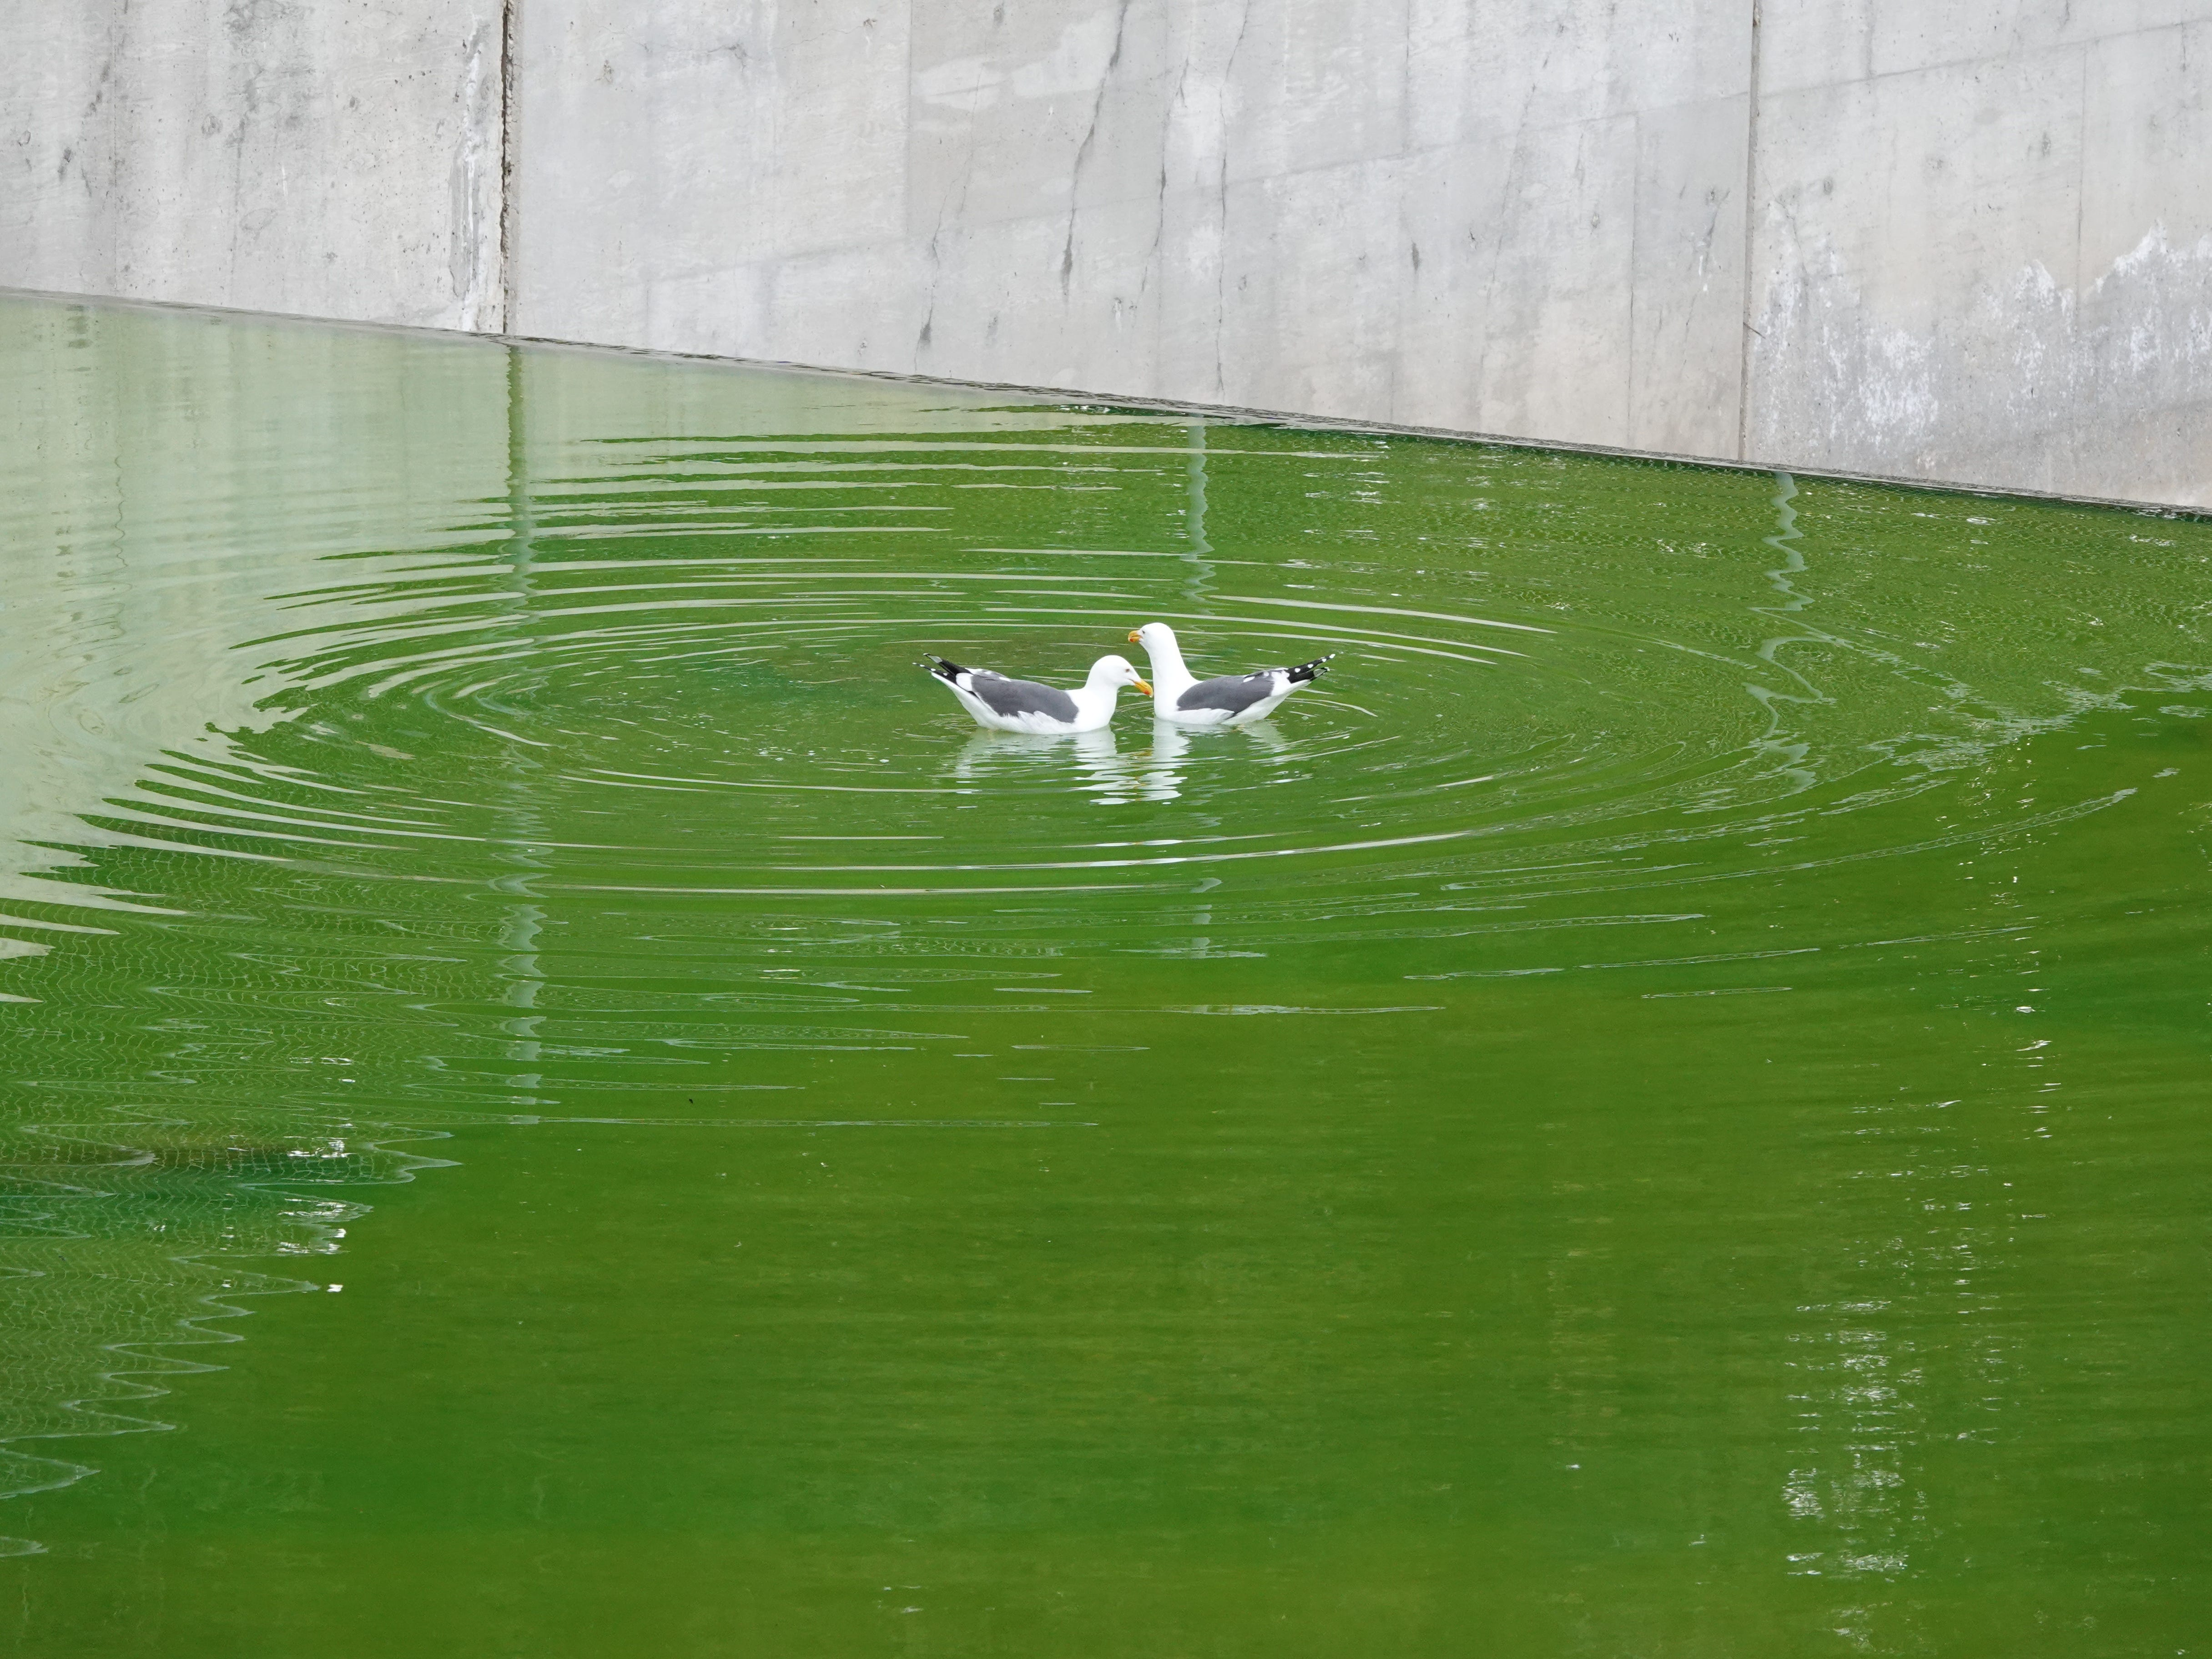 Seagulls swim in green water in the Arroyo Simi Monday afternoon. Officials later determined a substance that spilled into the waterway was not hazardous.